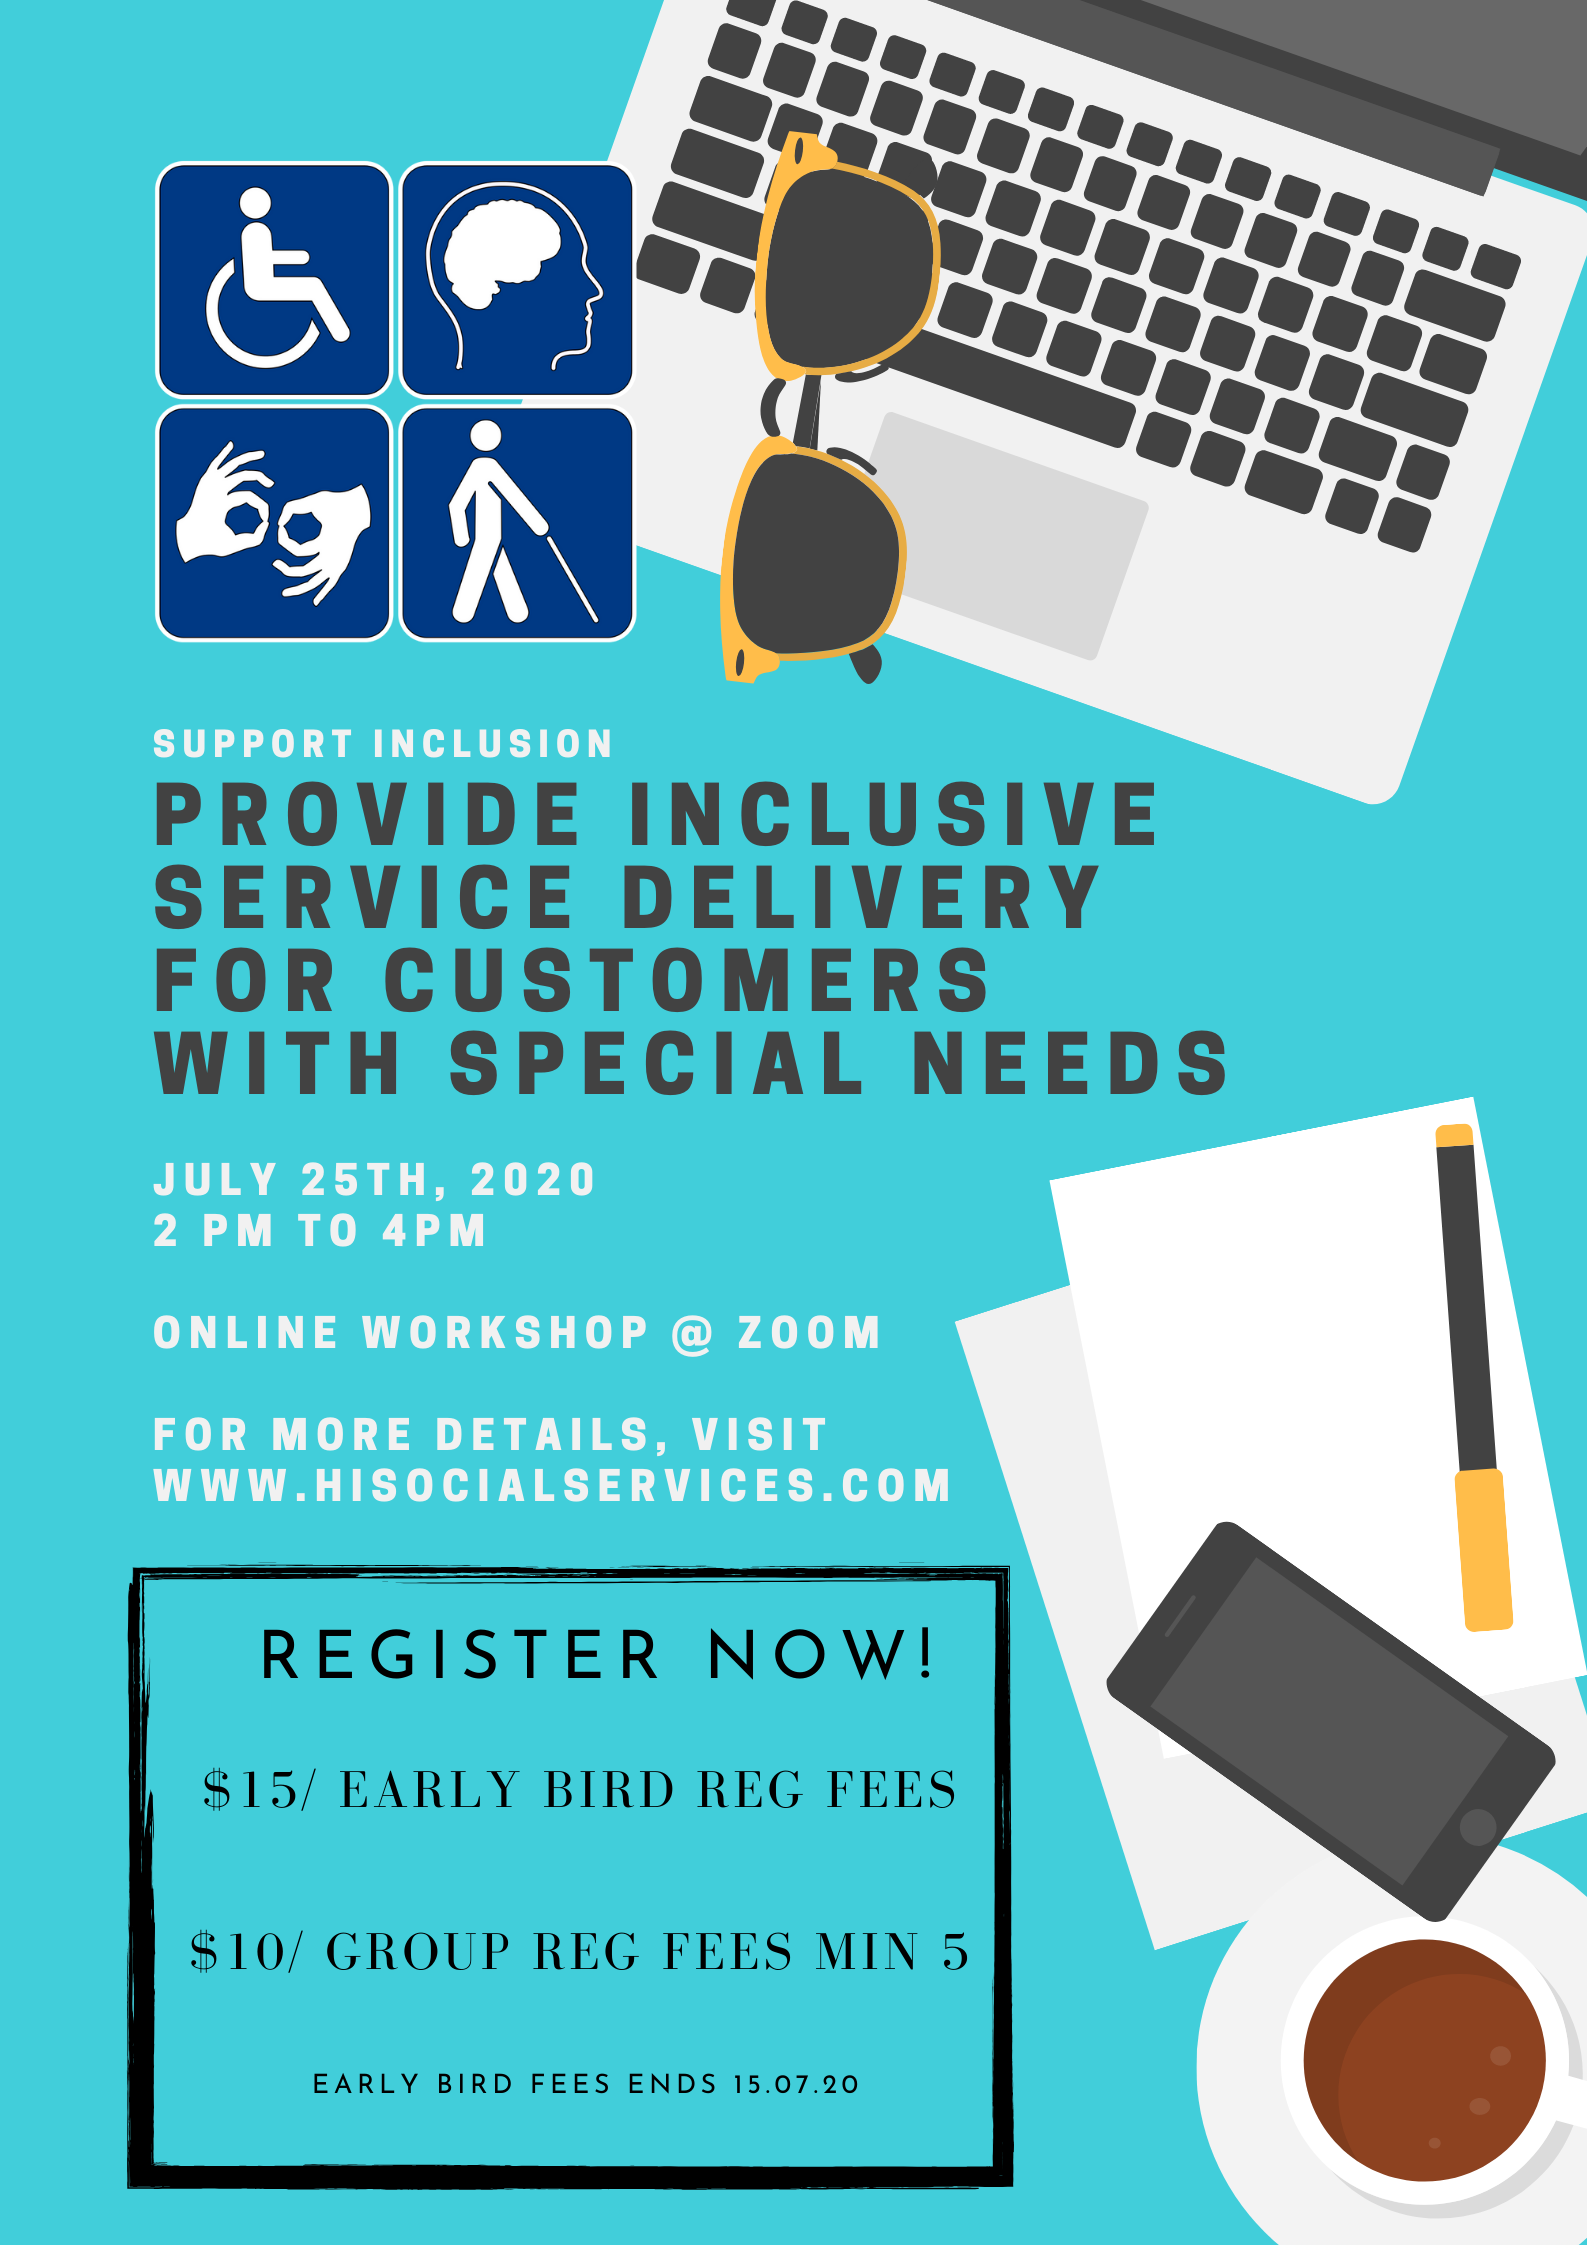 inclusive-service-delivery-poster_0_04093400_1592189166 Event - Online Home-Farming 101